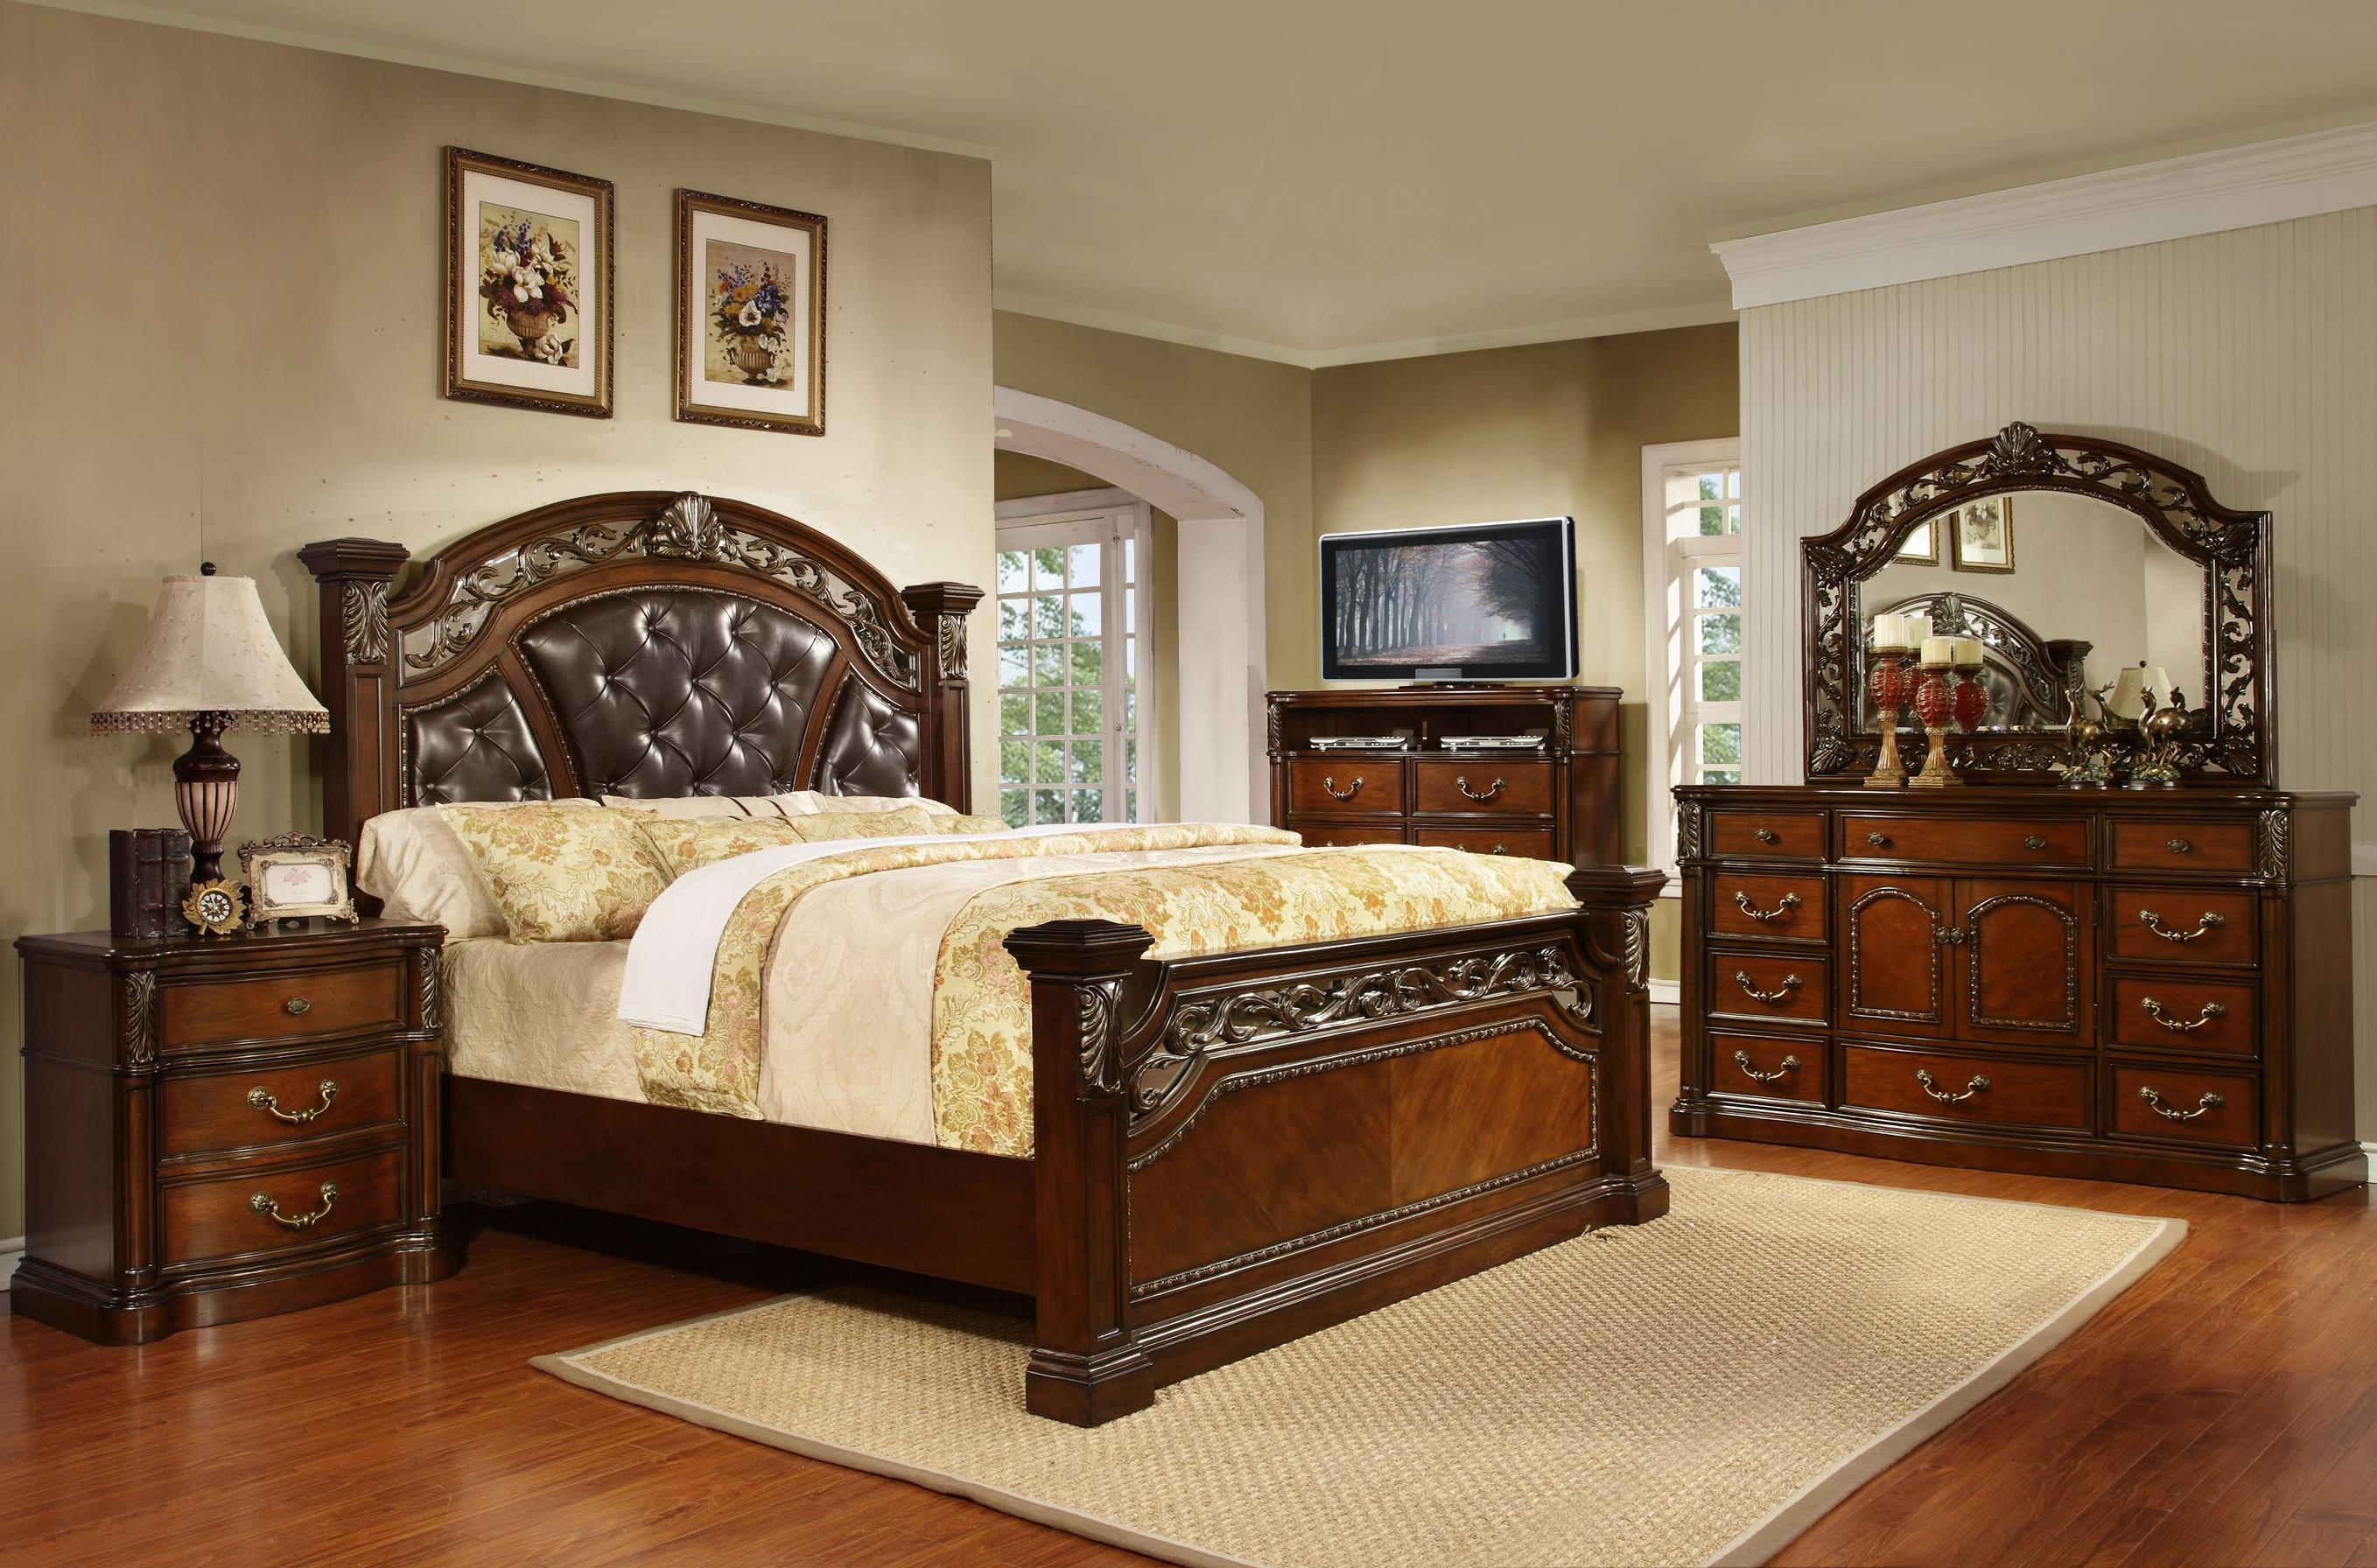 Queen Panel Bed W/ Acanthus Leaf Detailing   Vistoso By Avalon Furniture    Wilcox Furniture   Headboard U0026 Footboard Corpus Christi, Kingsville,  Calallen, ...